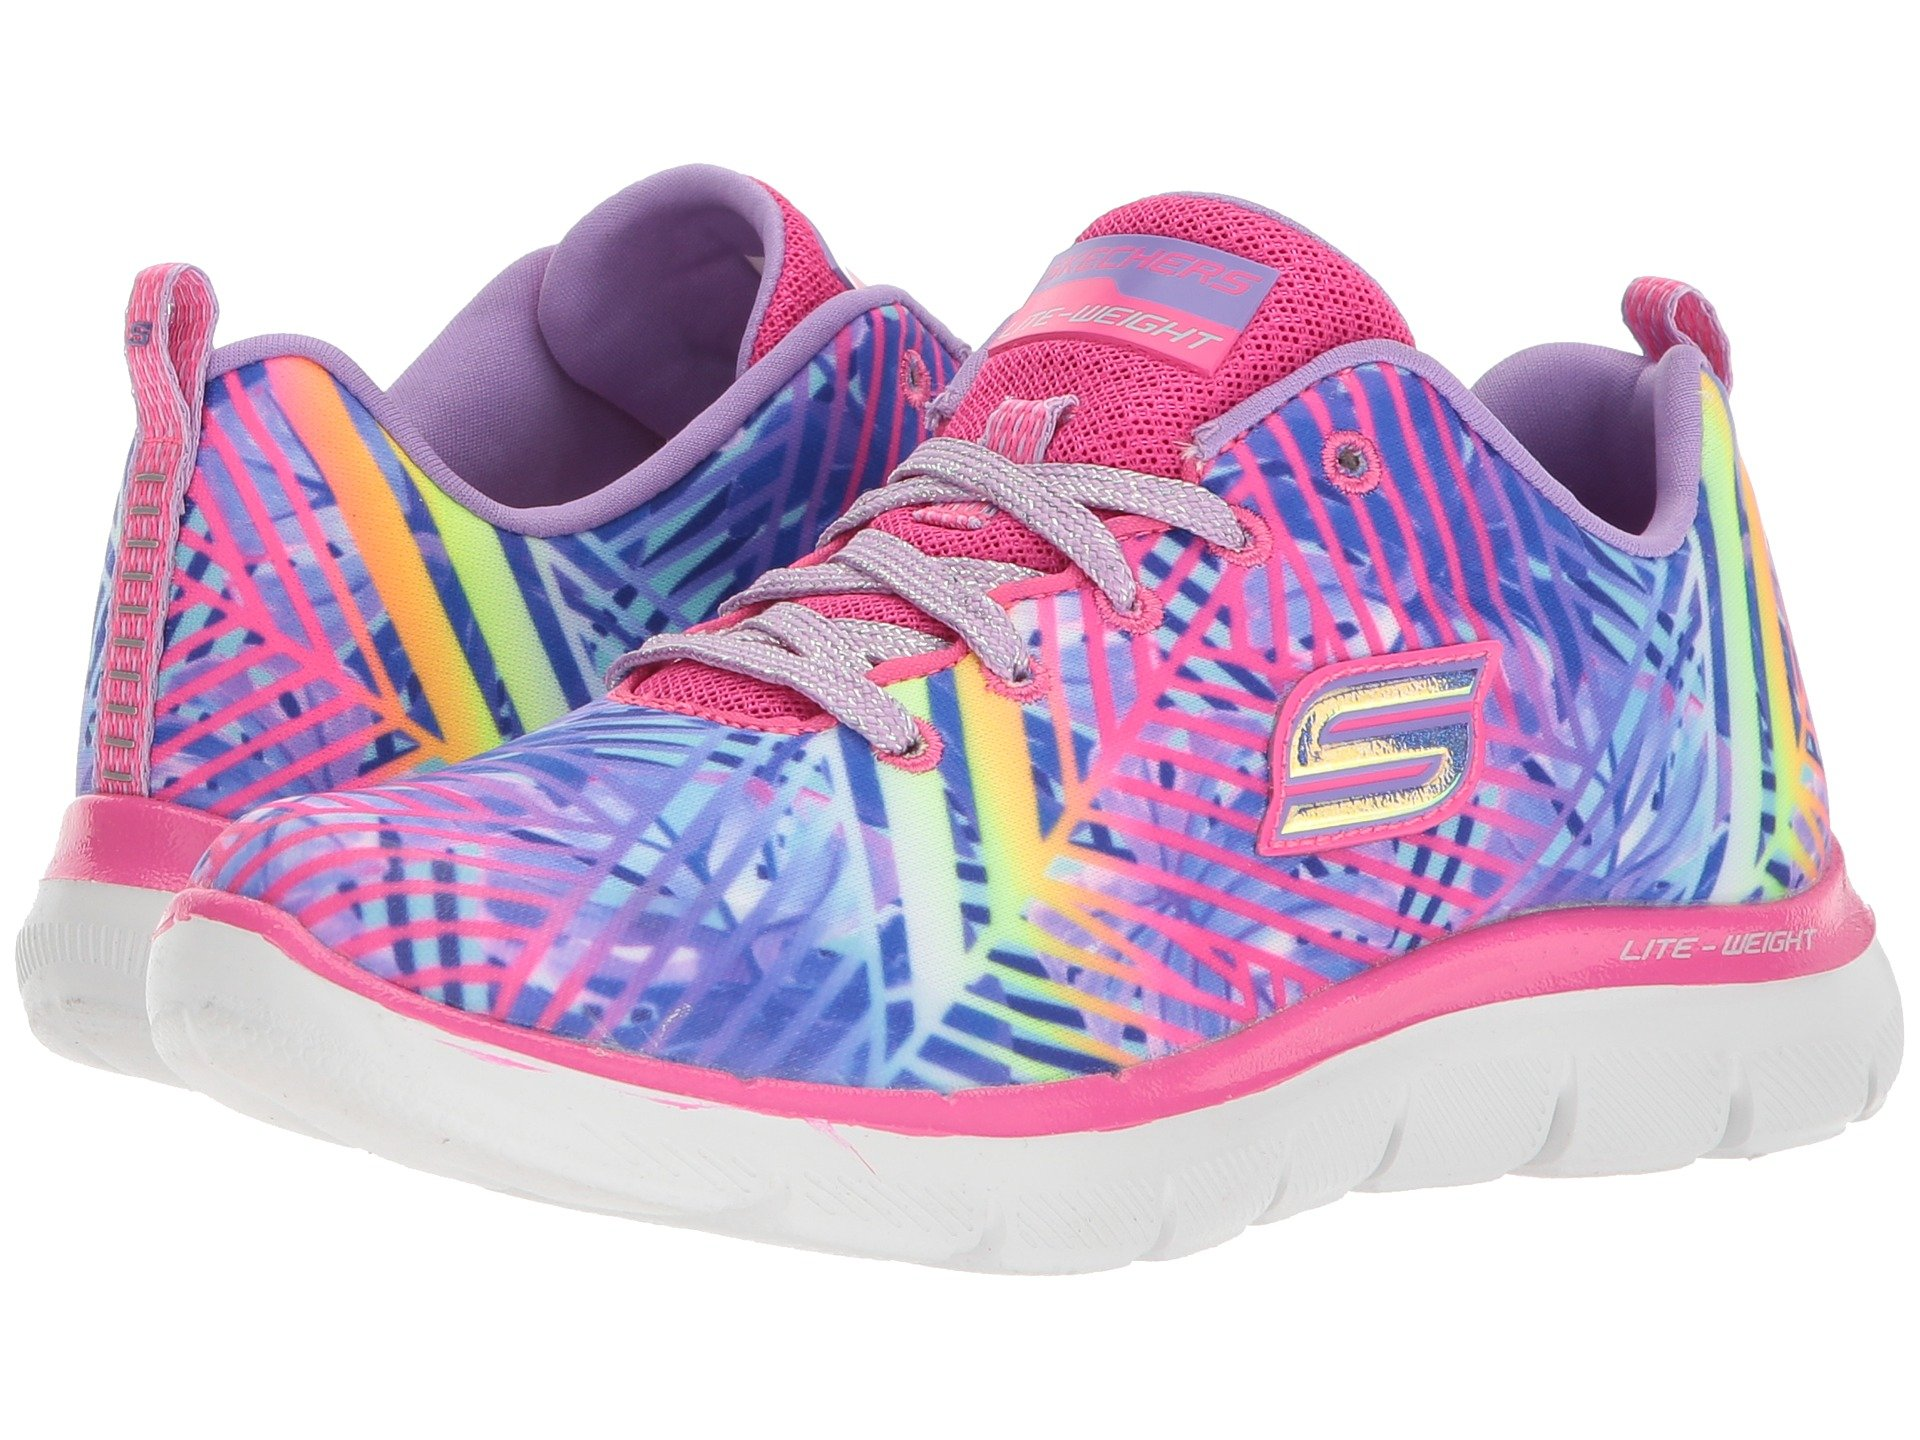 Skechers D lites sneakers reviews in Runners ChickAdvisor